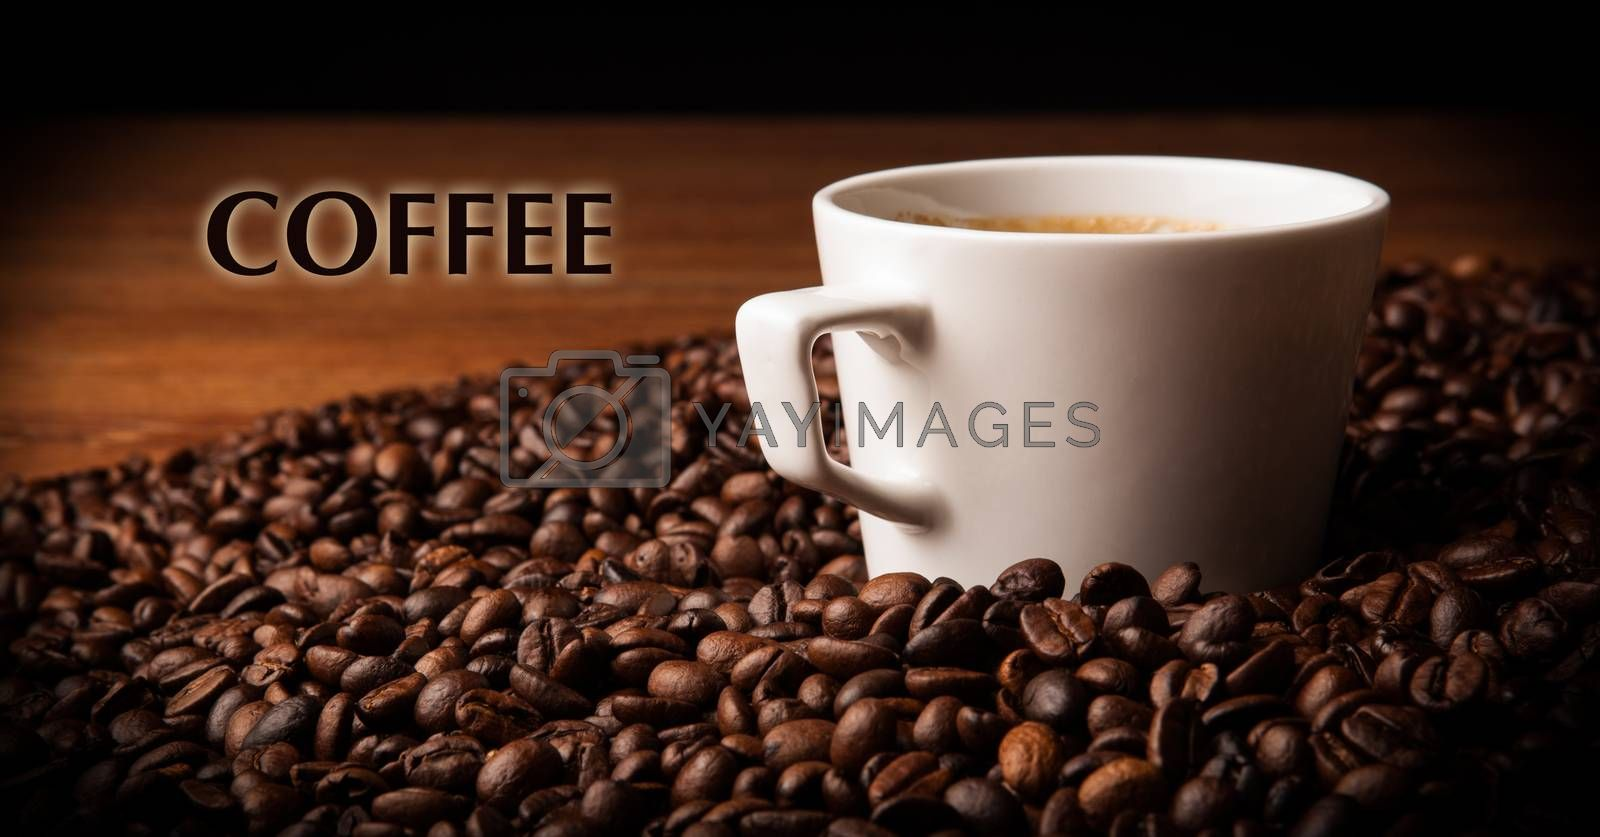 Royalty free image of cup of black coffee with roasted coffe beans by mizar_21984